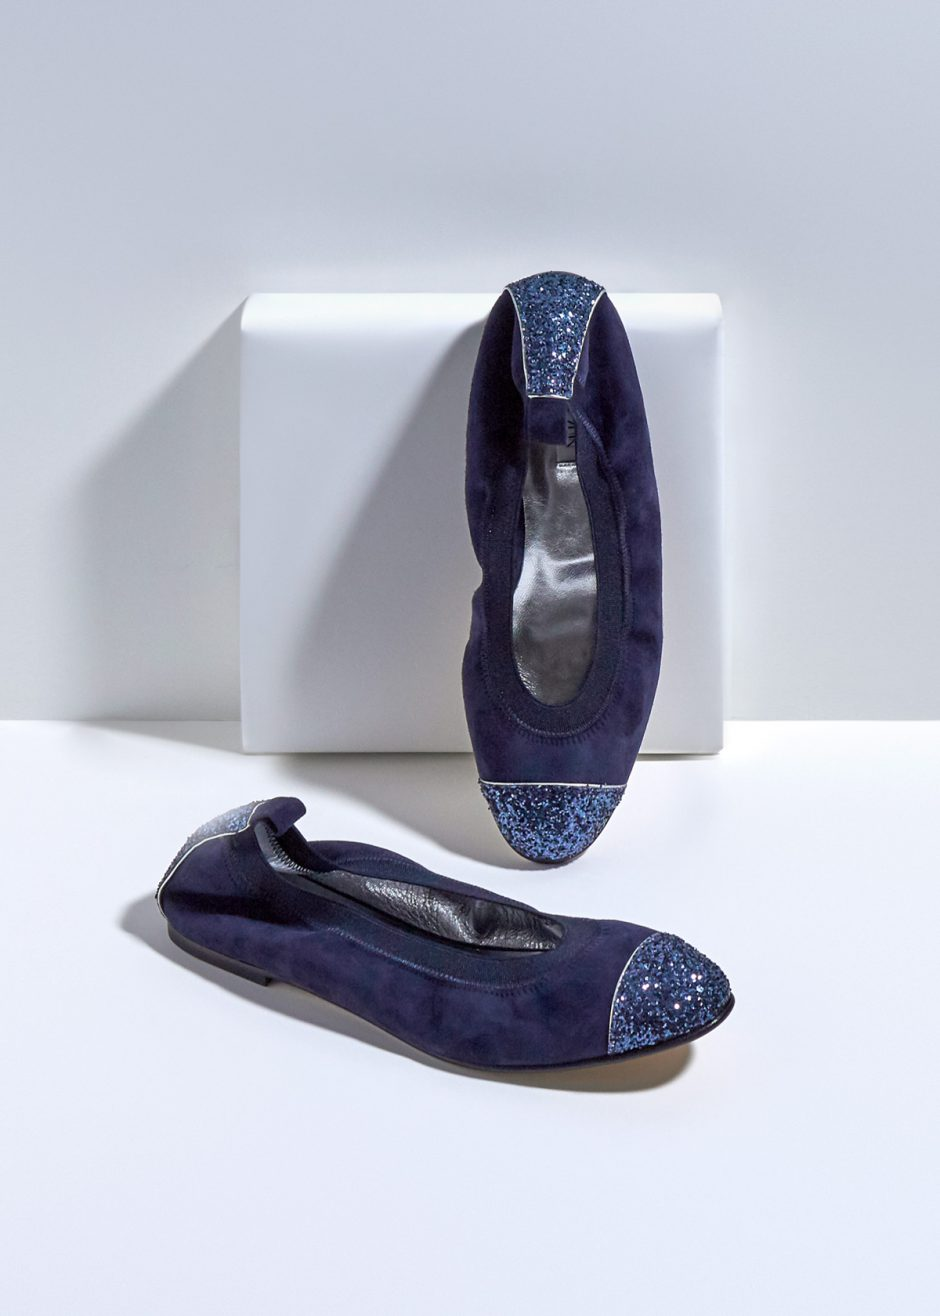 Kate – Ballet flat blue kidskin suede with blue glitter toe cap and heel